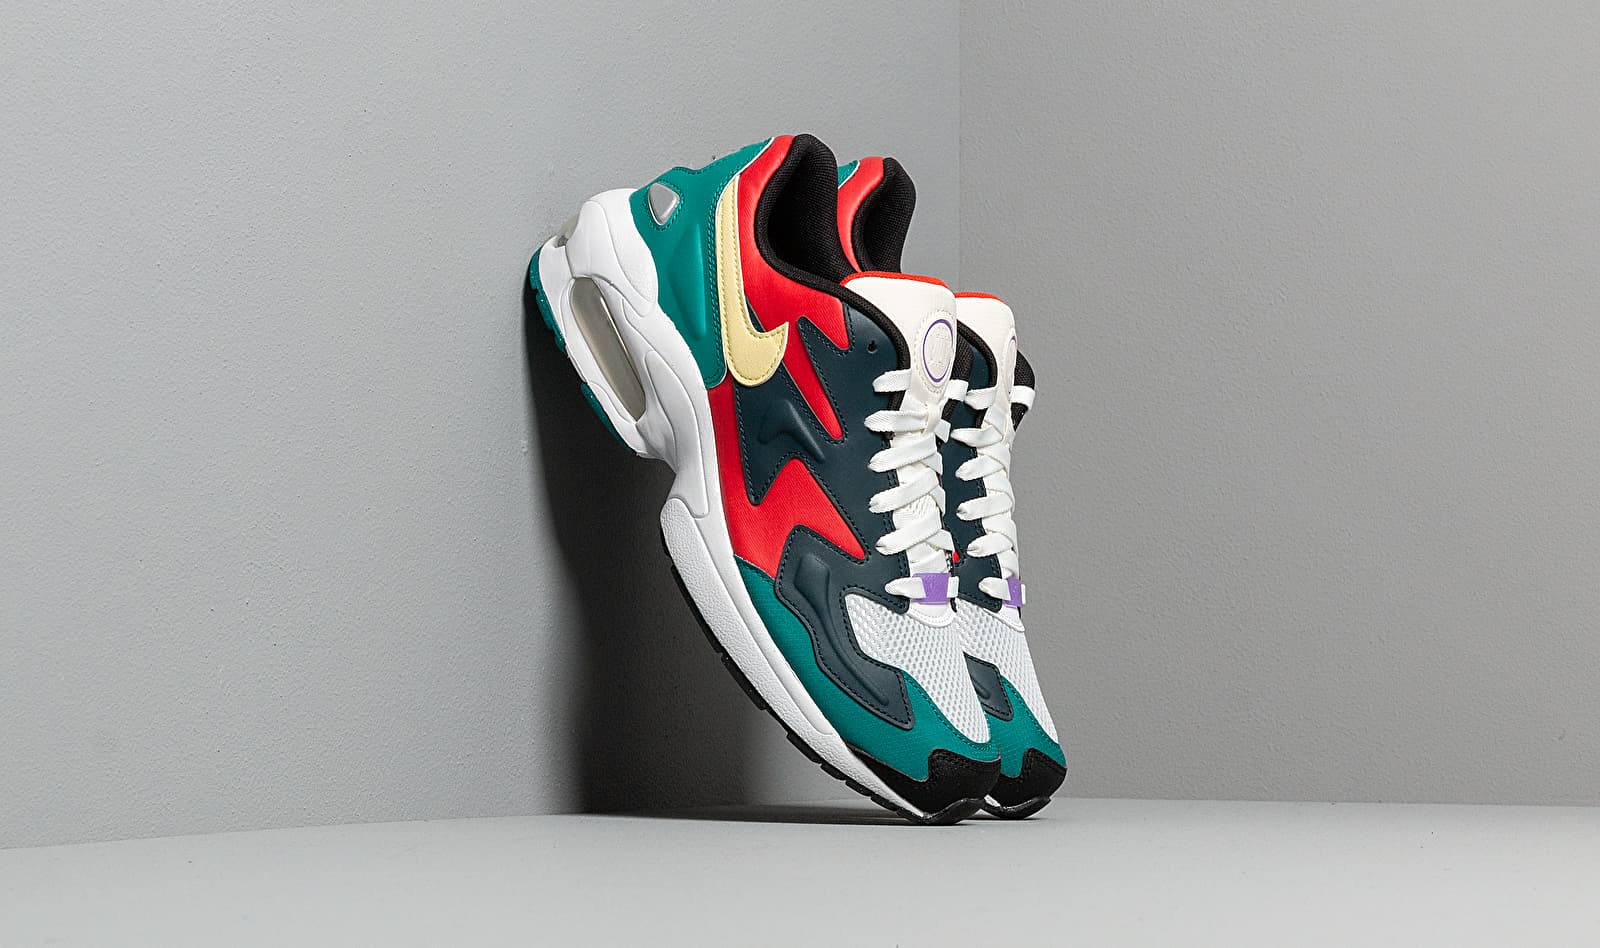 Nike Air Max 2 Light SP Habanero Red/Armory Navy-Radiant Emerald BV1359-600